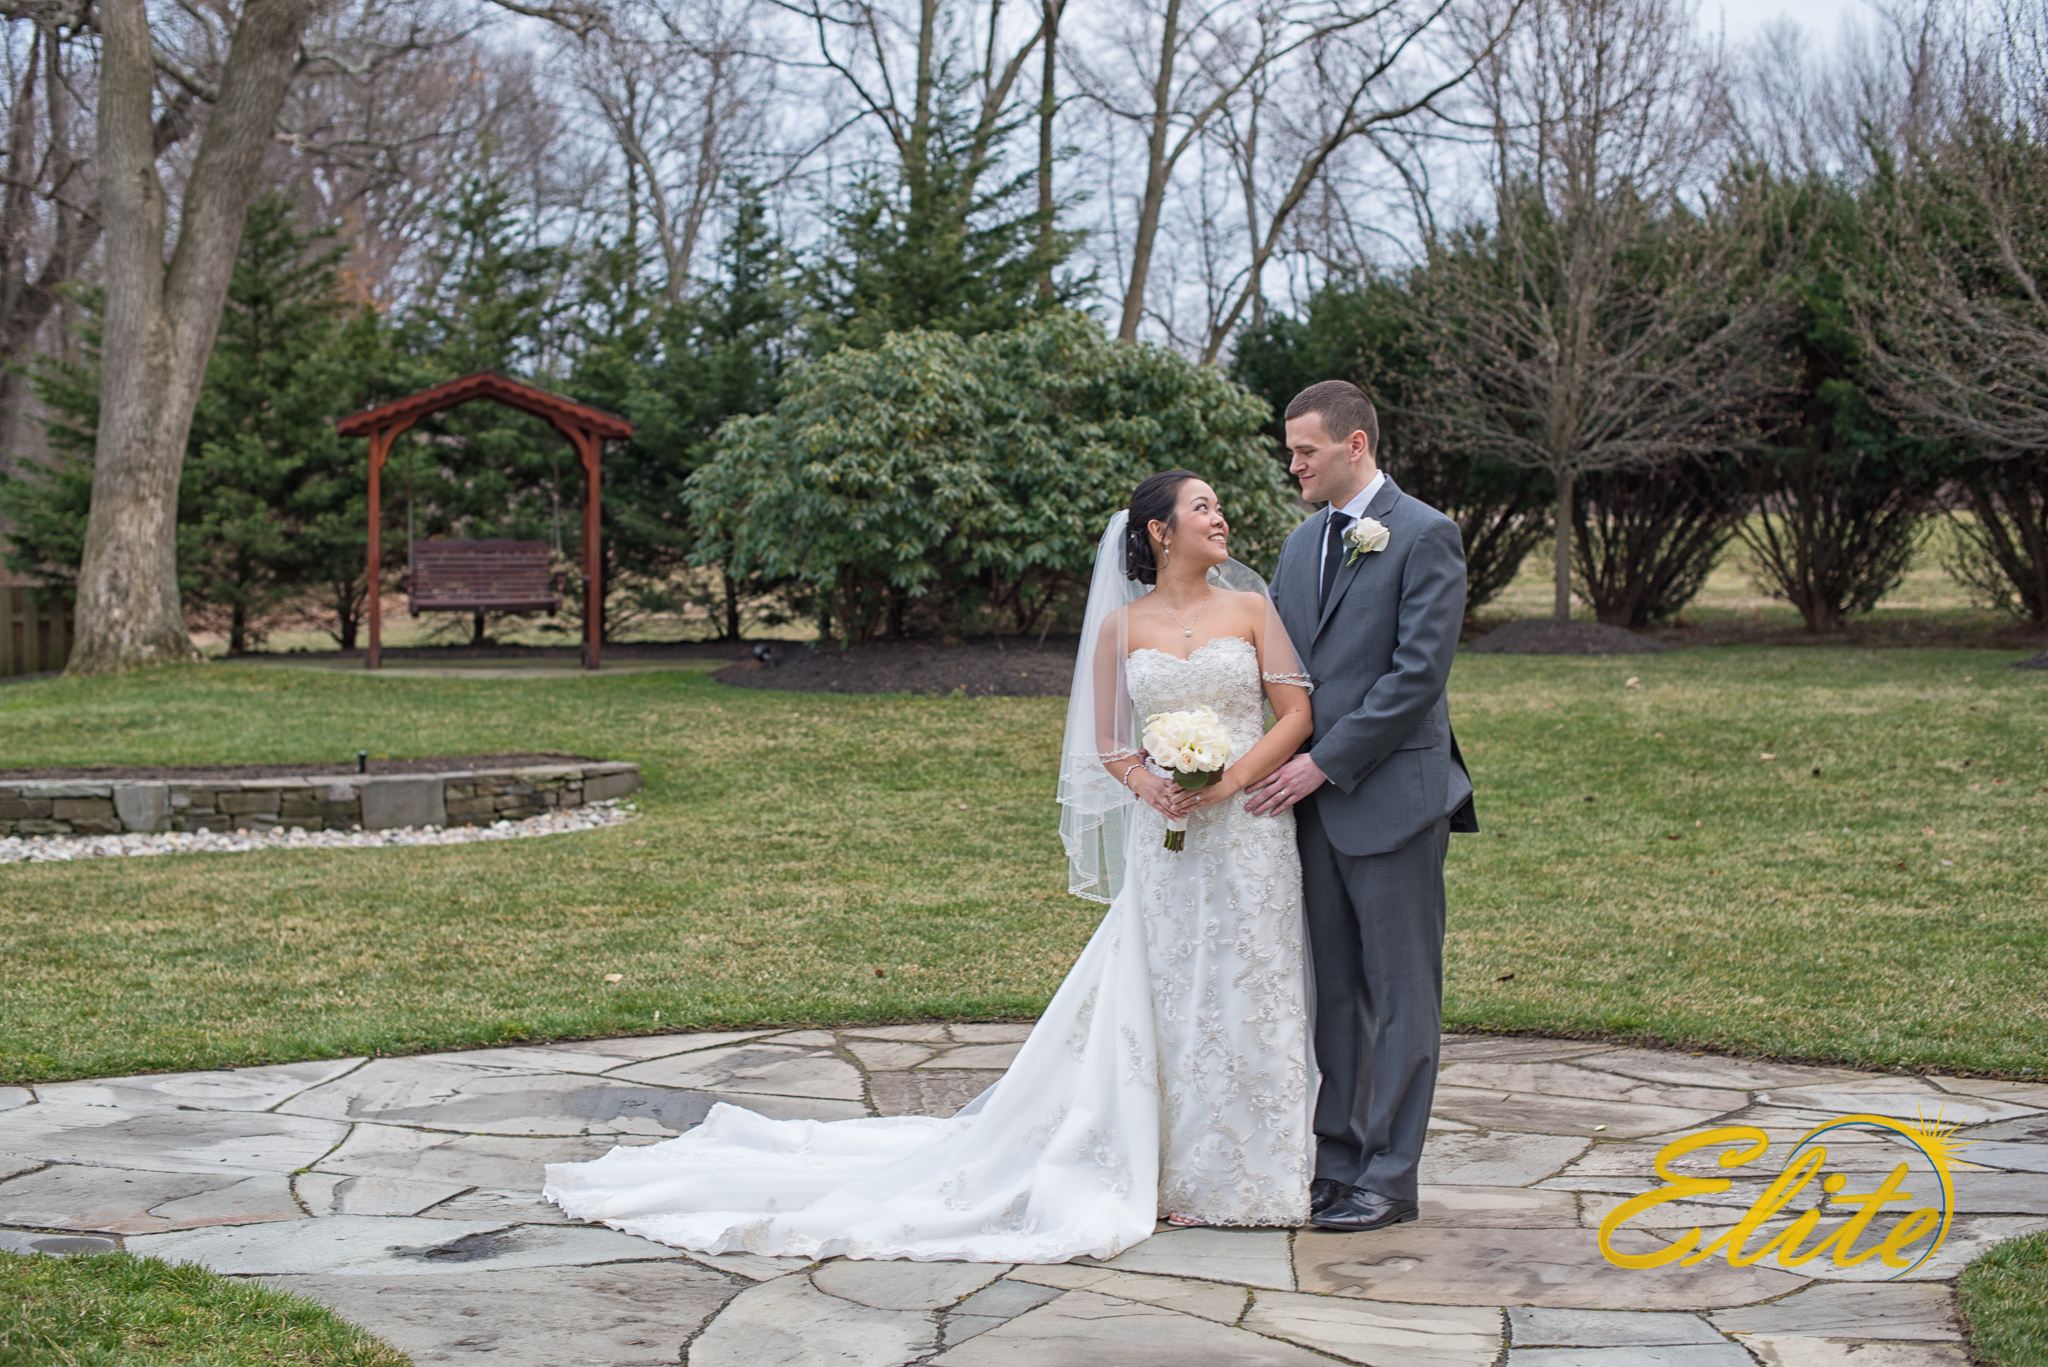 Outdoor photos at The English Manor are a must.  The grounds are so beautiful!